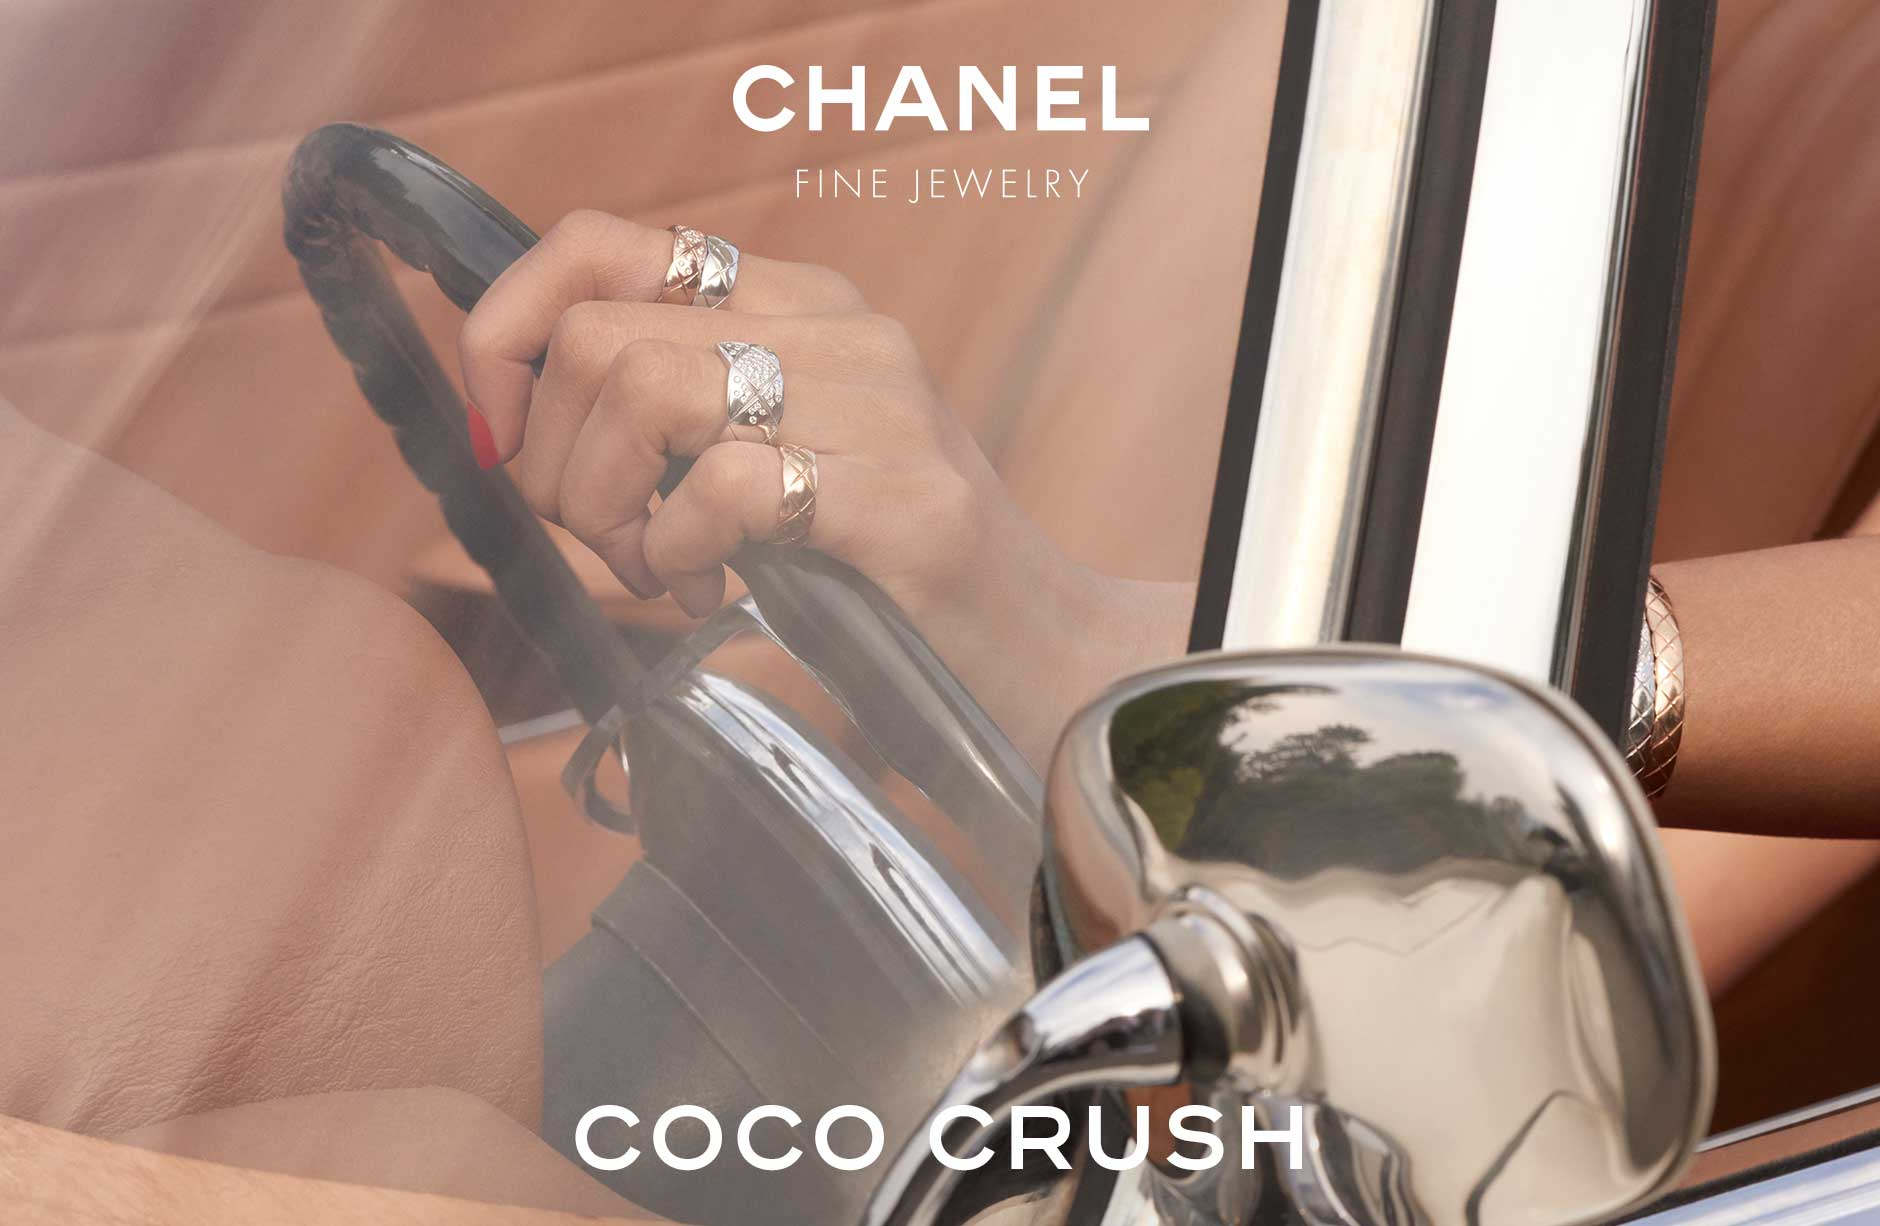 Chanel: Fine Jewelry - Coco Crush